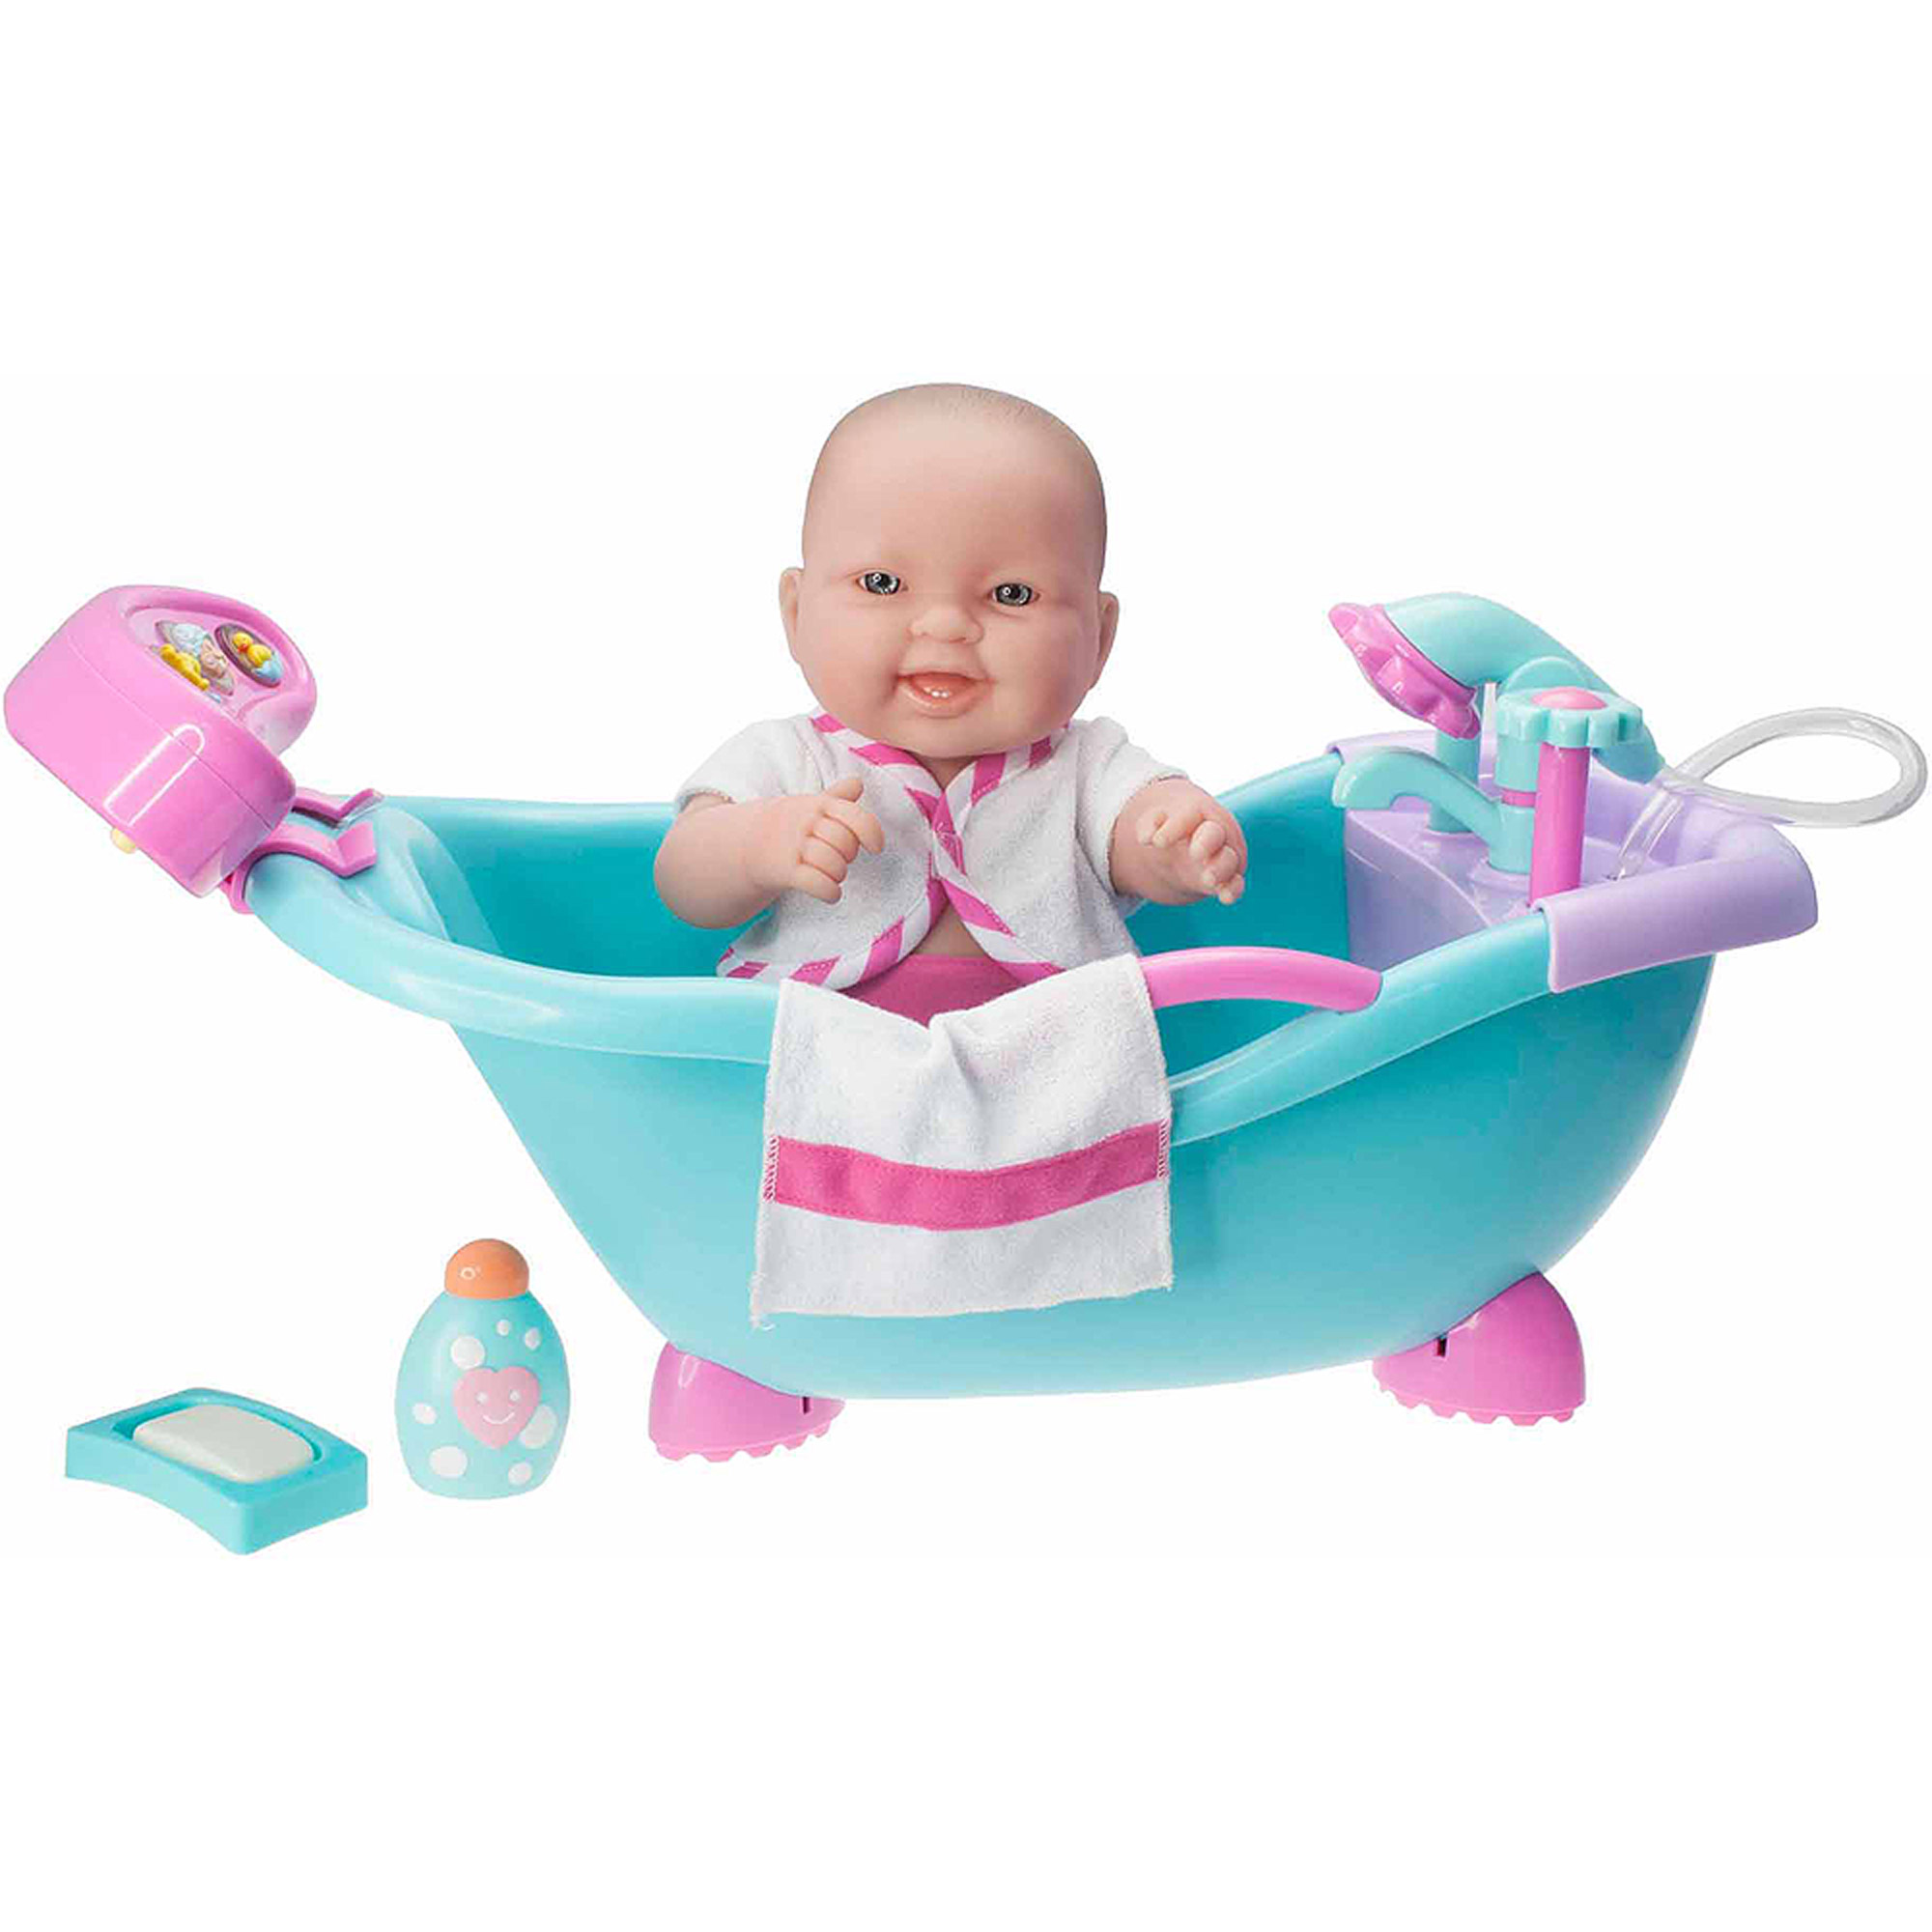 "Lots to Love Babies Electronic Sounds and Working Bath with 14"" All-Vinyl Doll and... by JC TOYS"